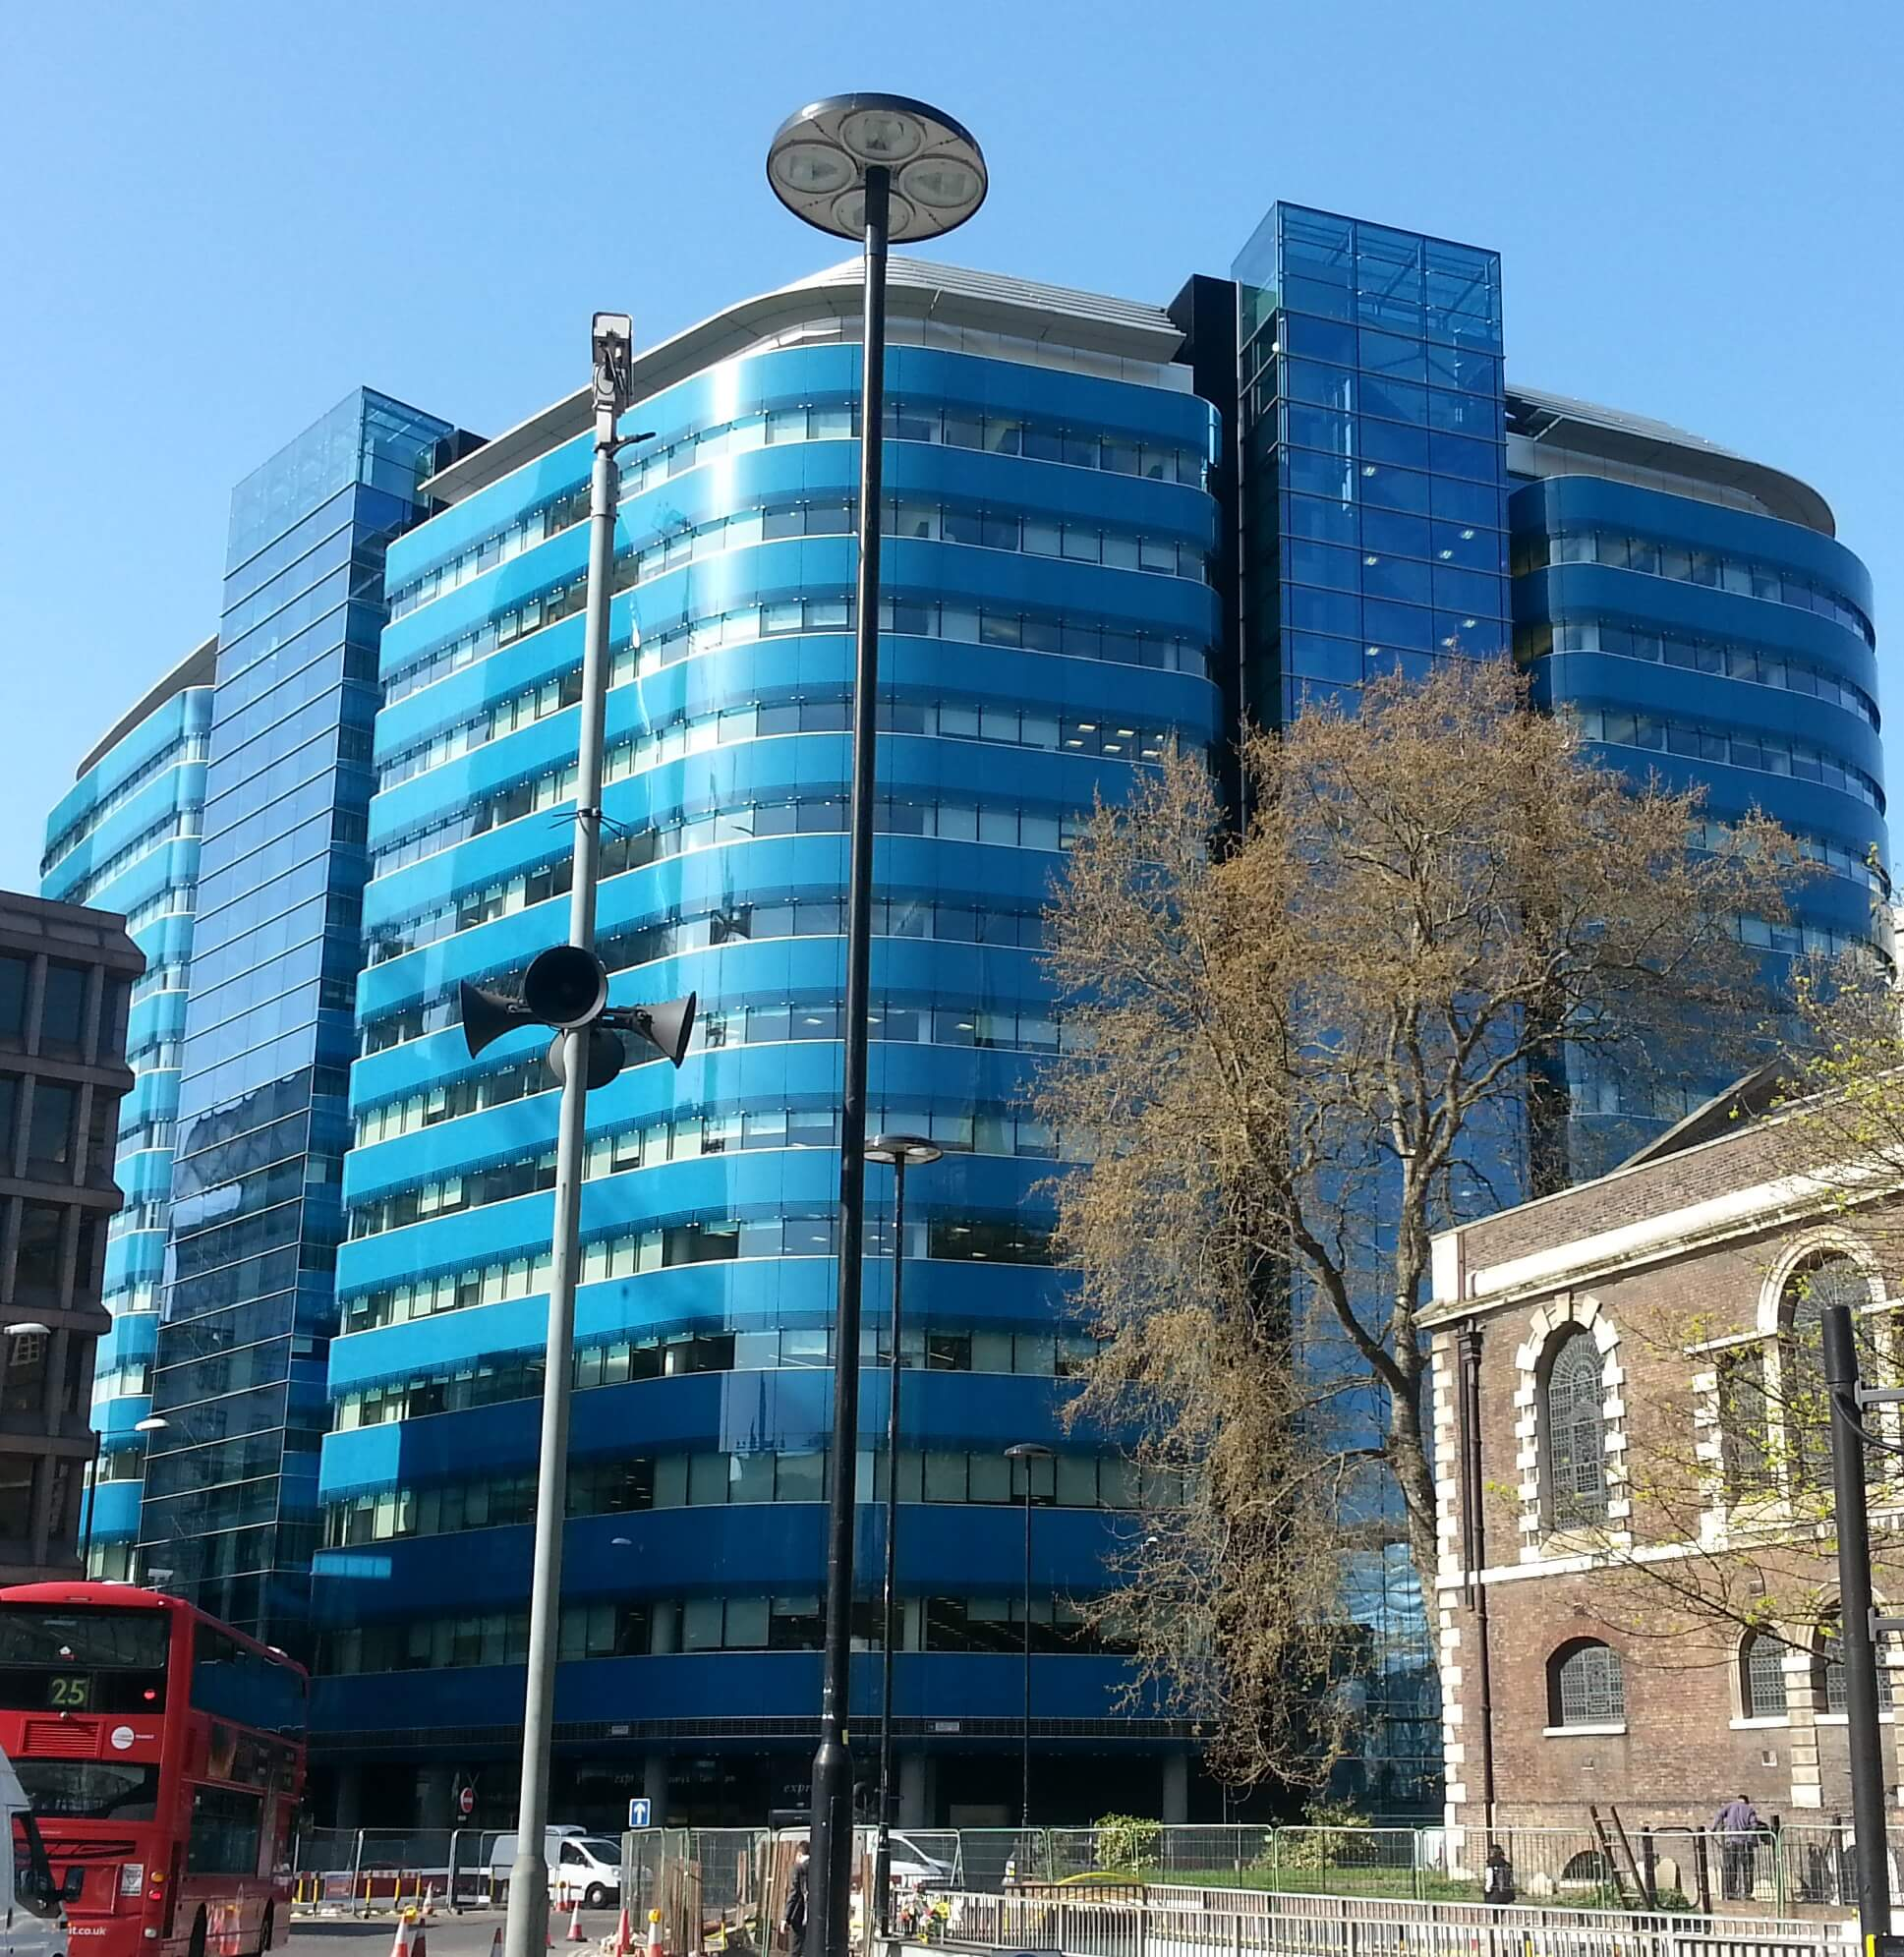 St Botolph Building in London, the headquarters of Jardine Lloyd Thompson. By Adhib - Own work, CC BY-SA 4.0, https://commons.wikimedia.org/w/index.php?curid=39613134